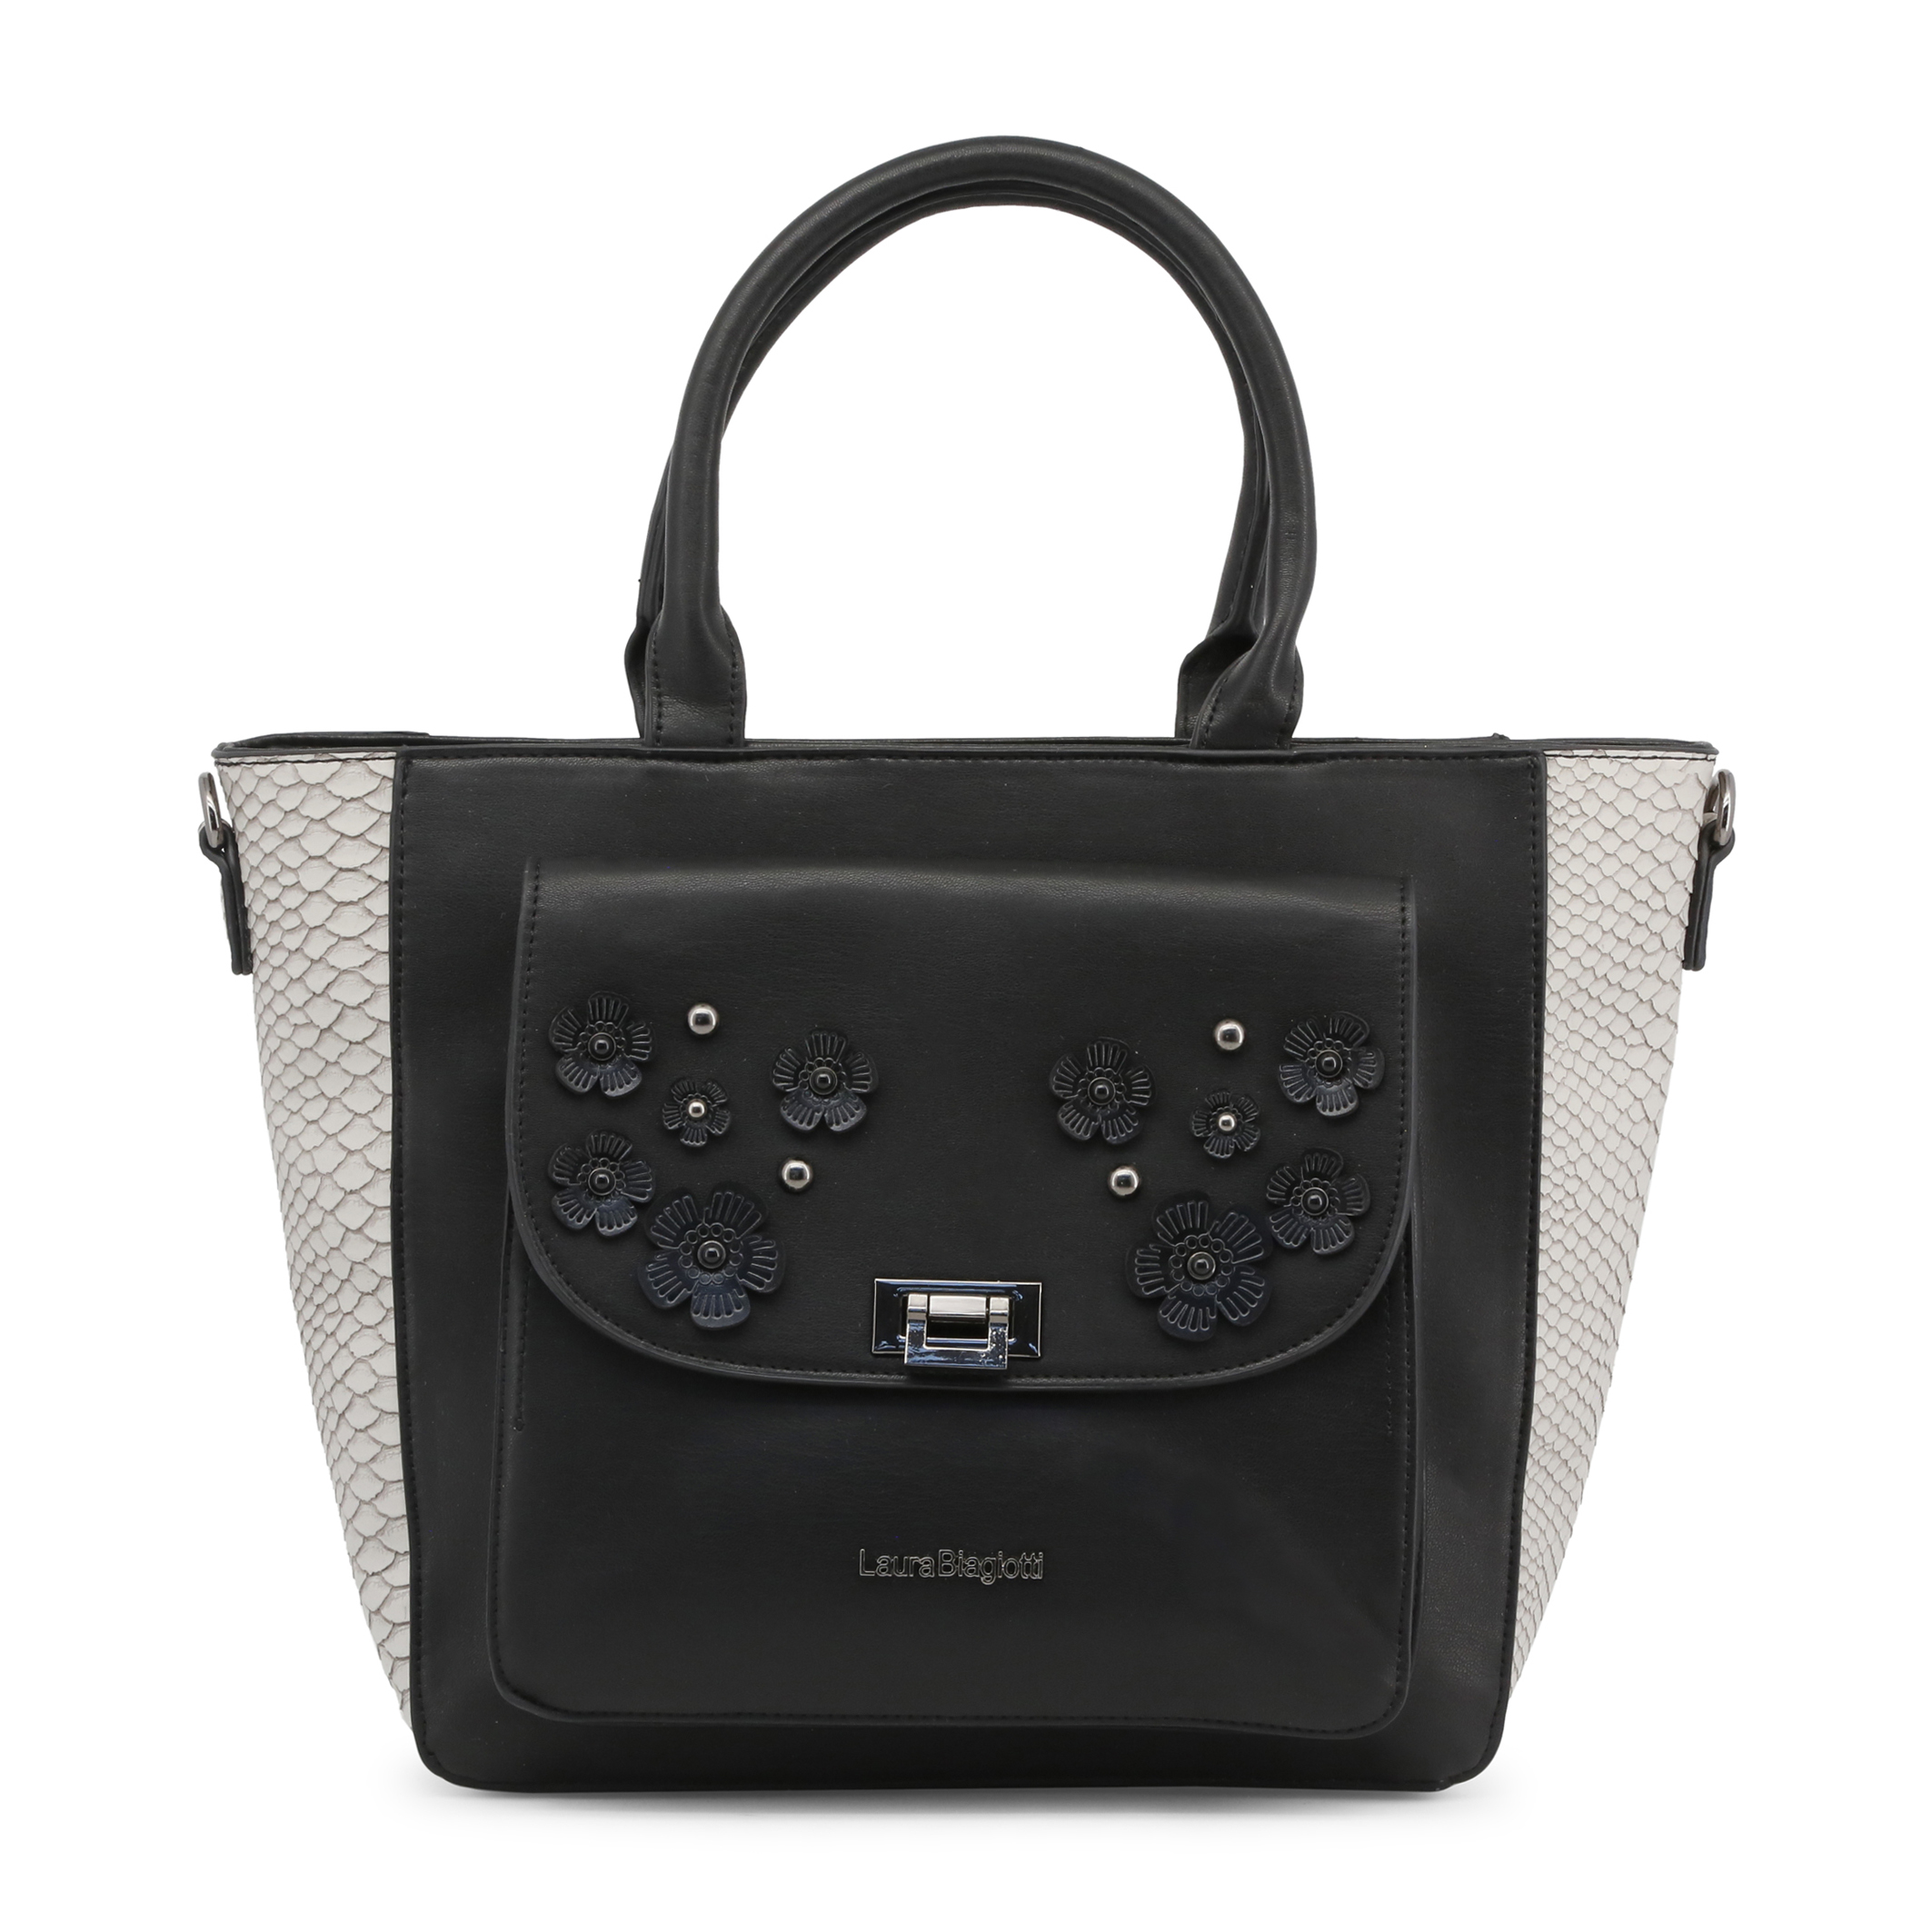 Shopping bag Laura Biagiotti LB18S114-5 Donna Nero 86230